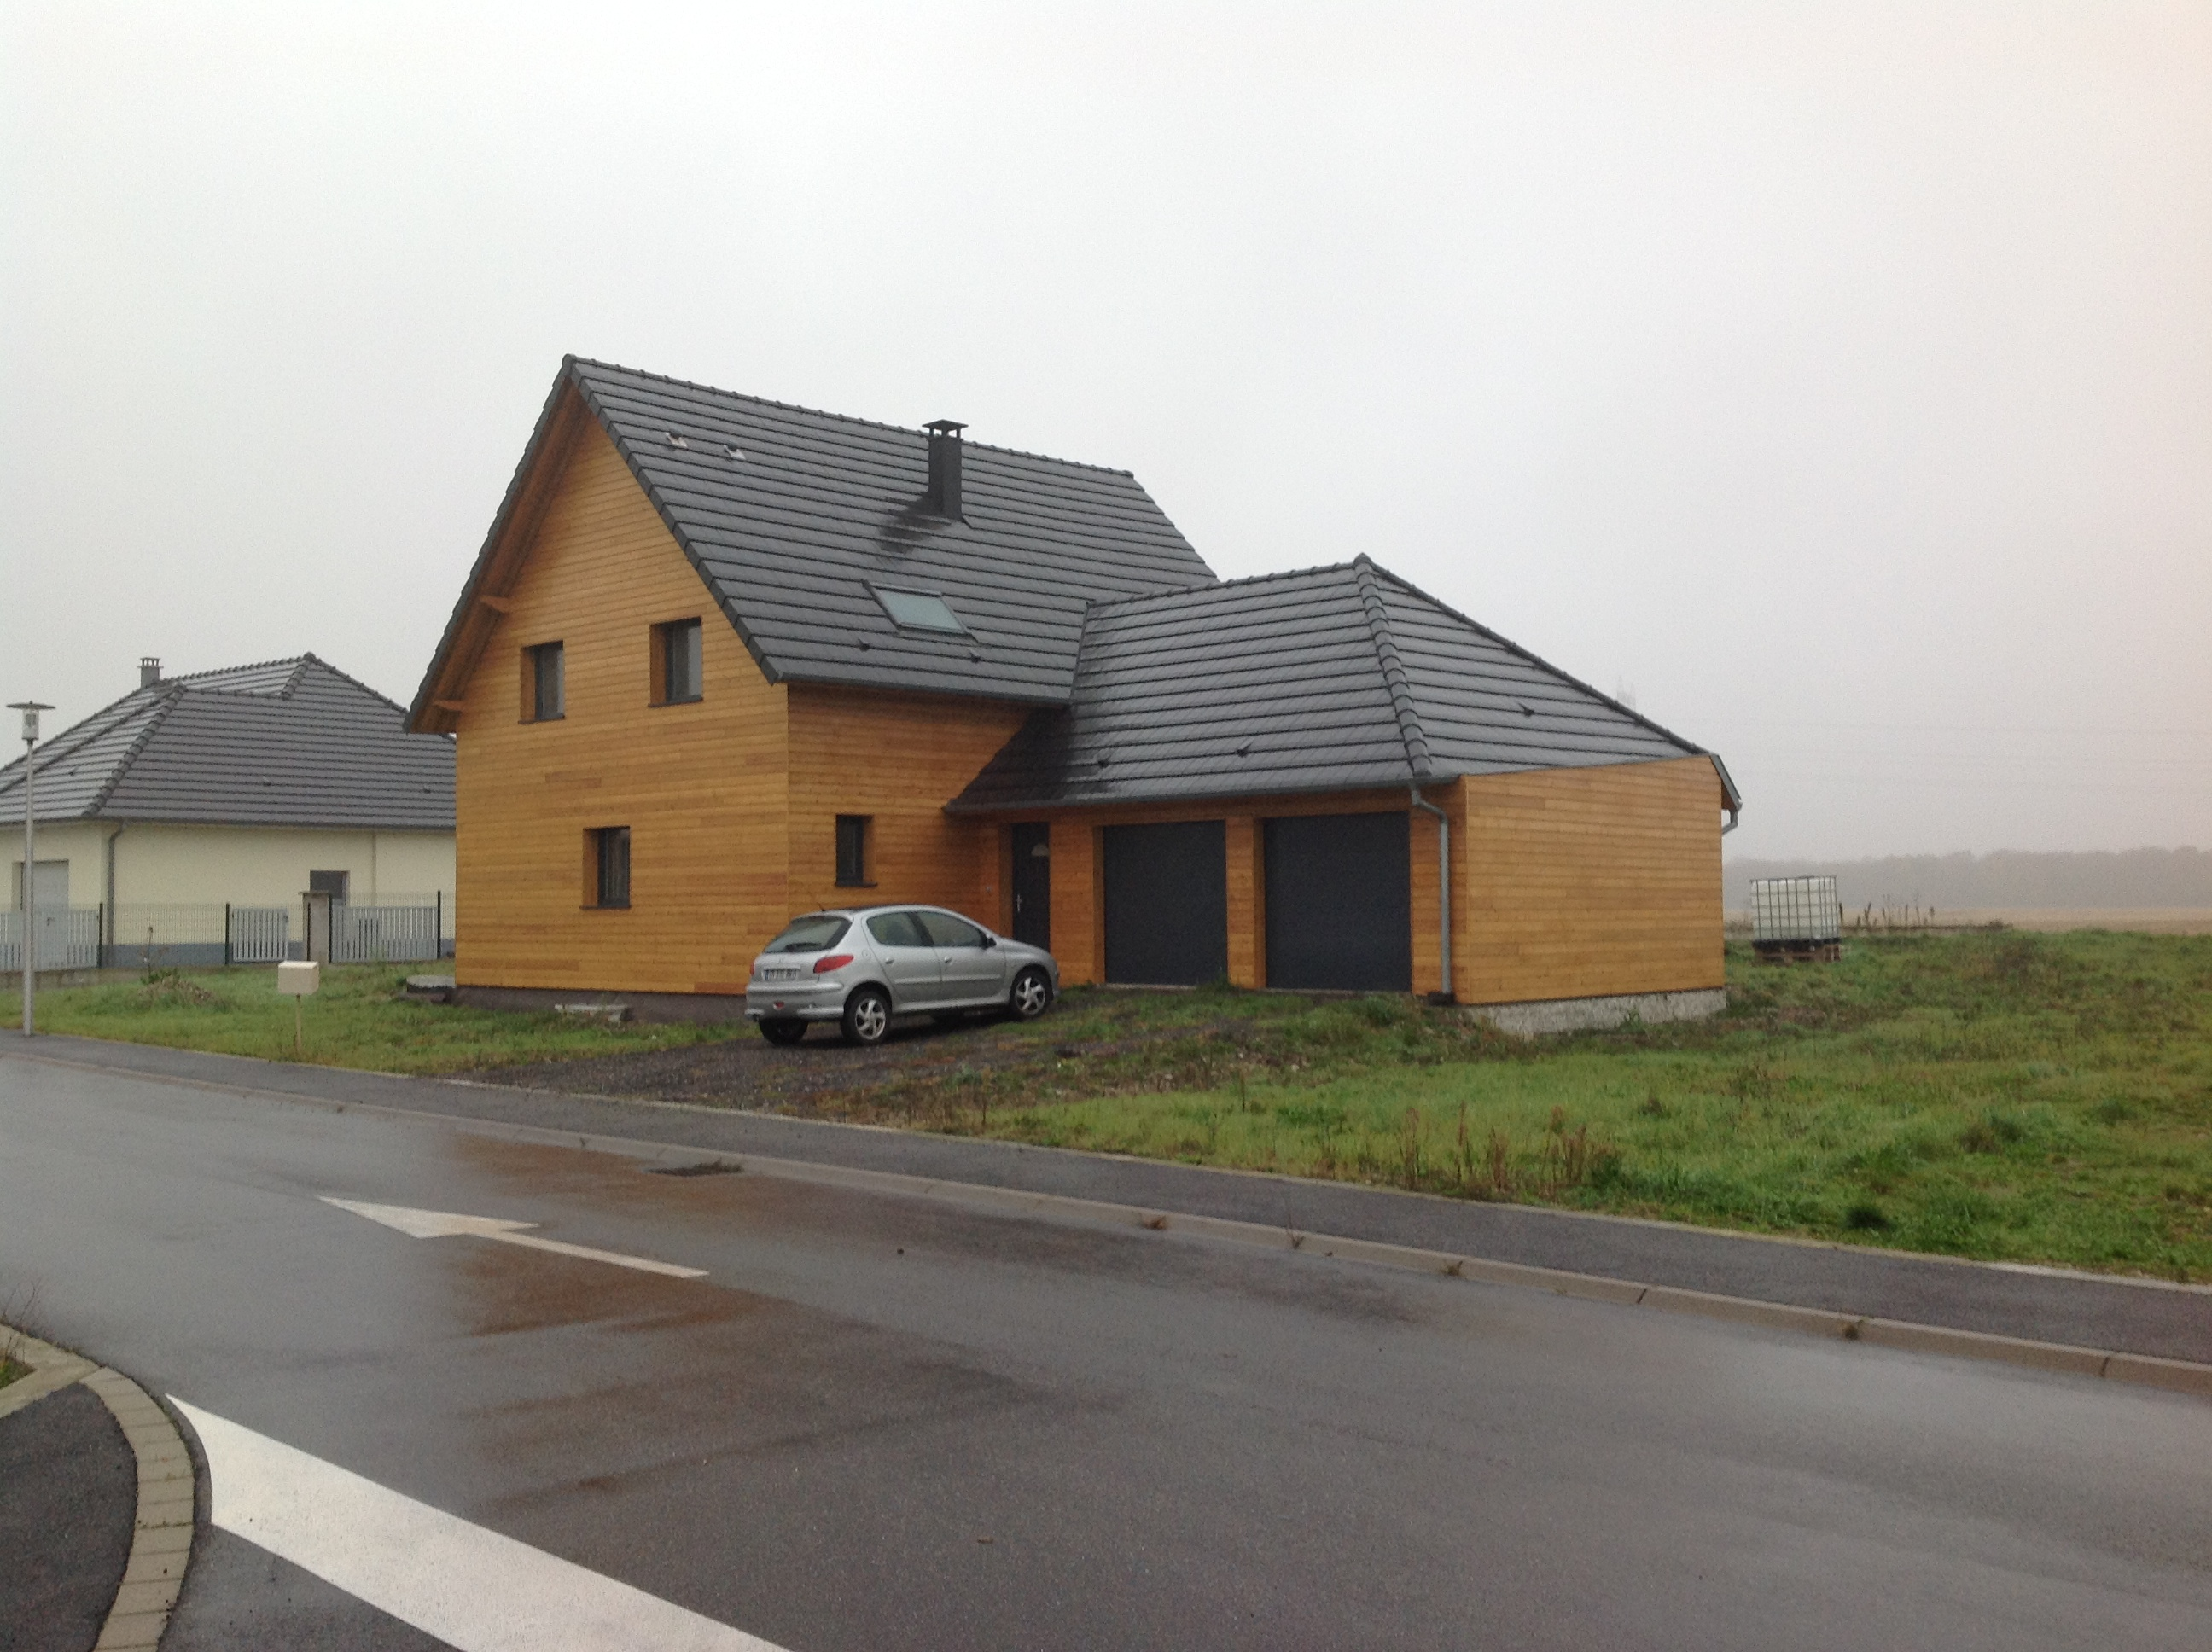 Maison en bois toiture pente multiple abt construction for Garage exterieur design